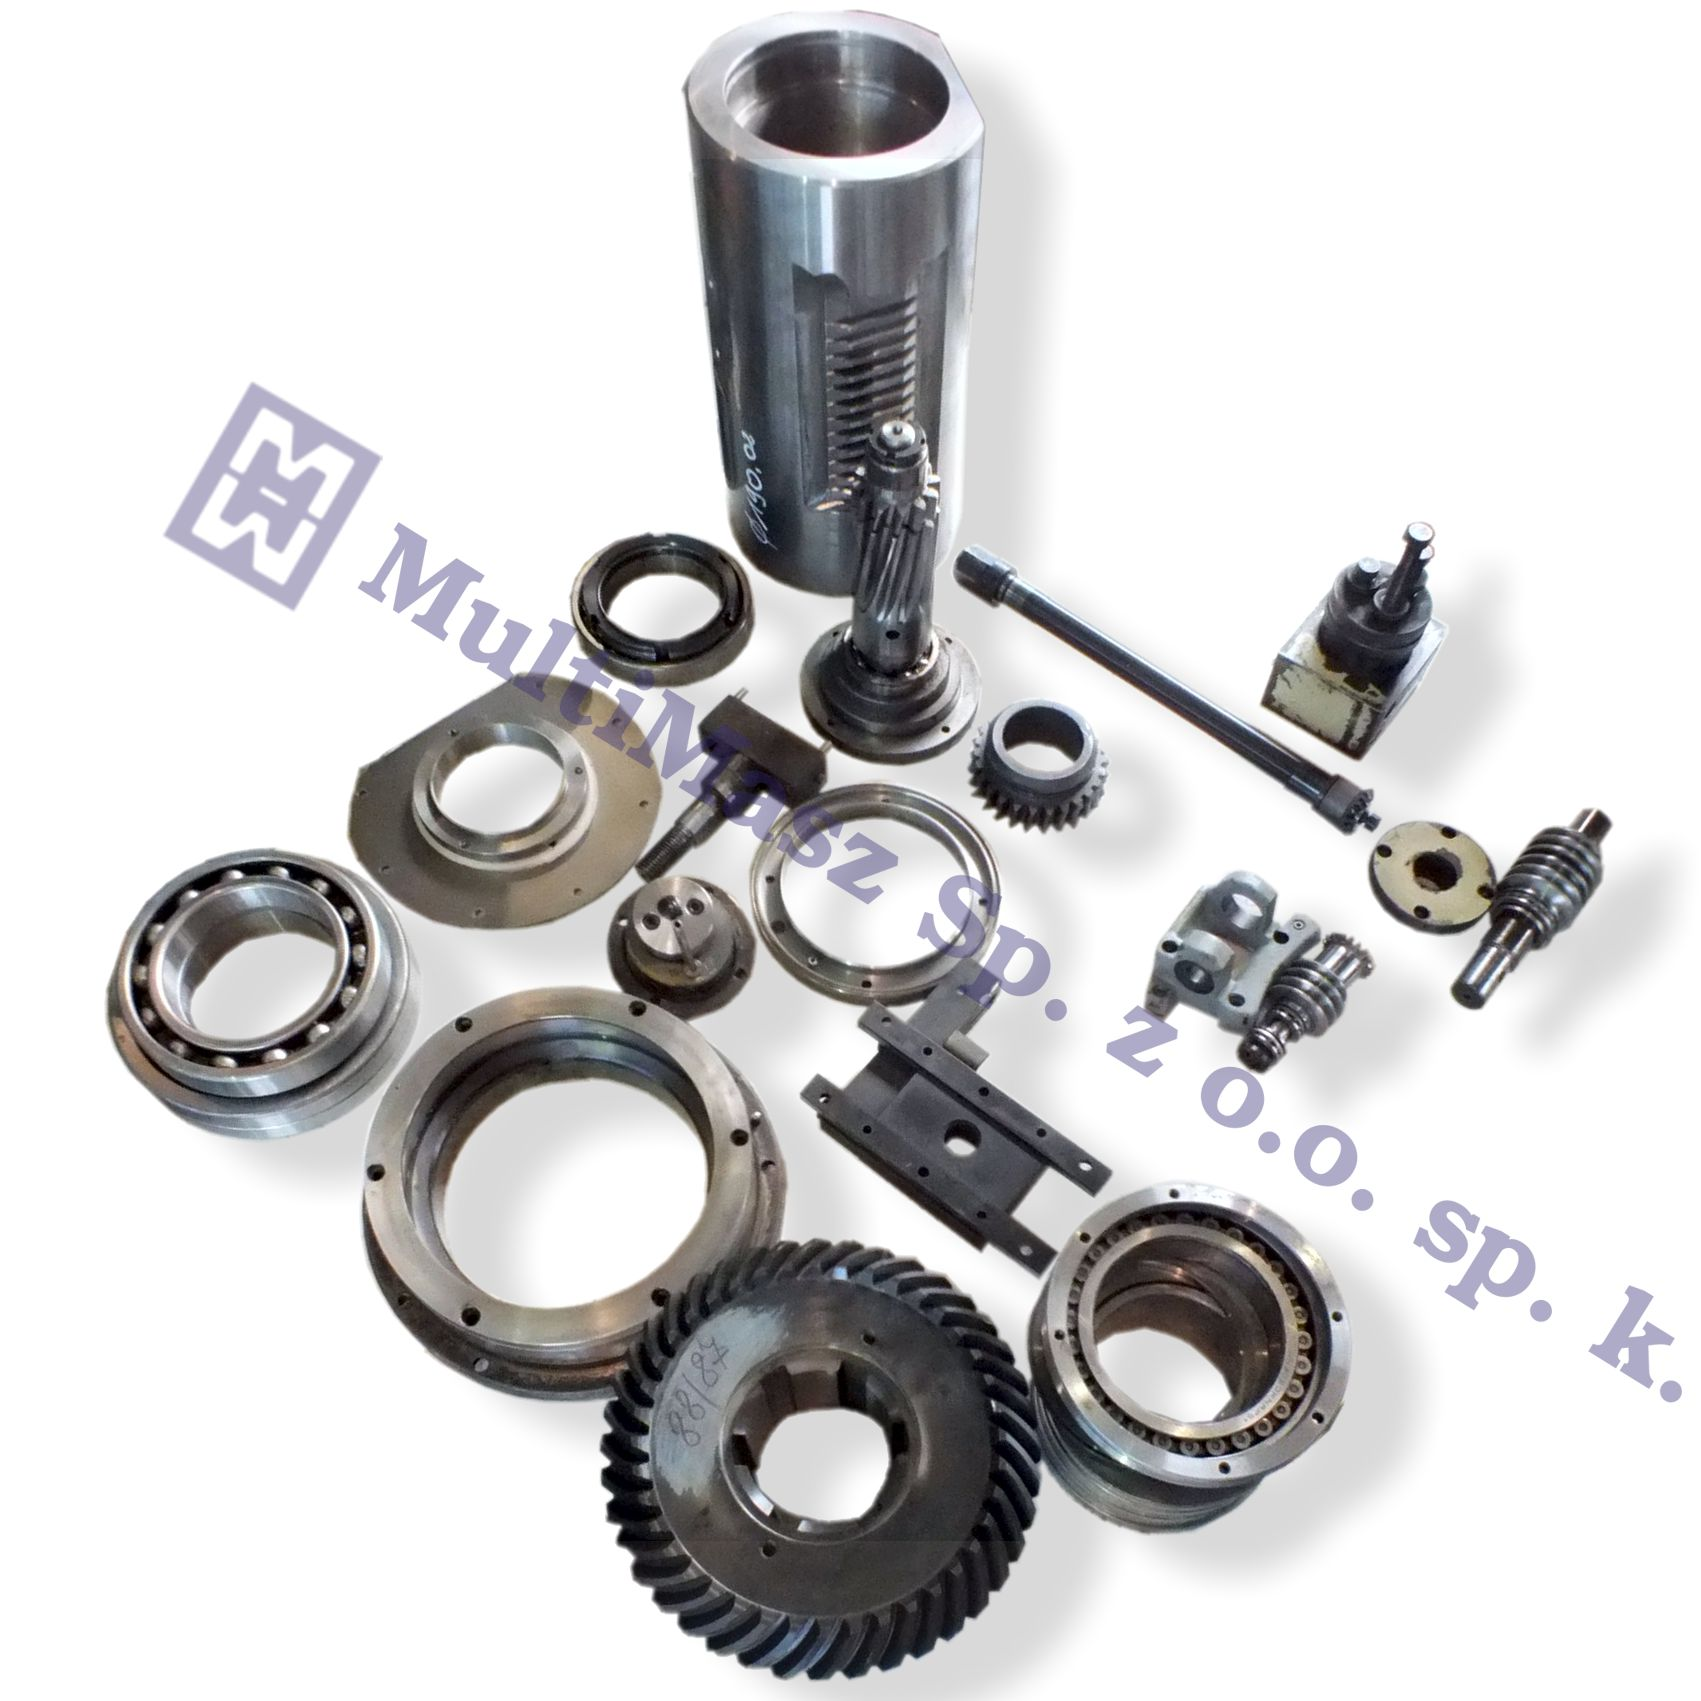 SPARE PARTS FOR MACHINE TOOLS - Clutches and brakes